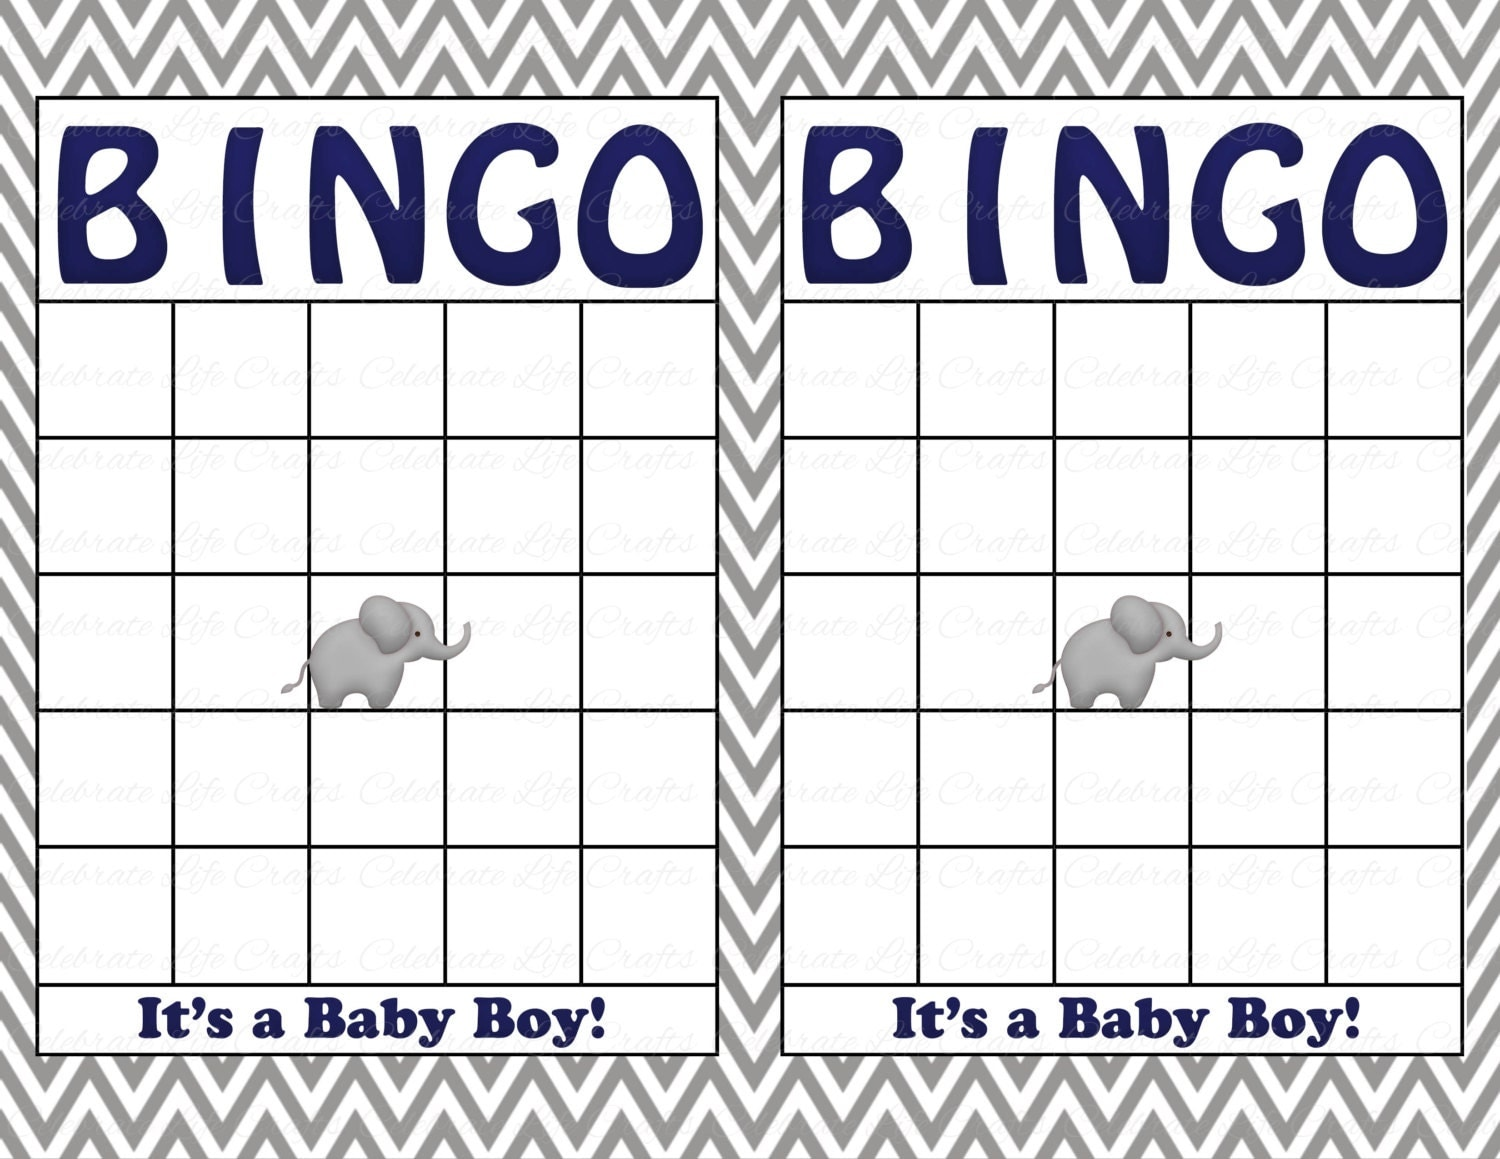 It's just a photo of Ridiculous Printable Baby Bingo Cards